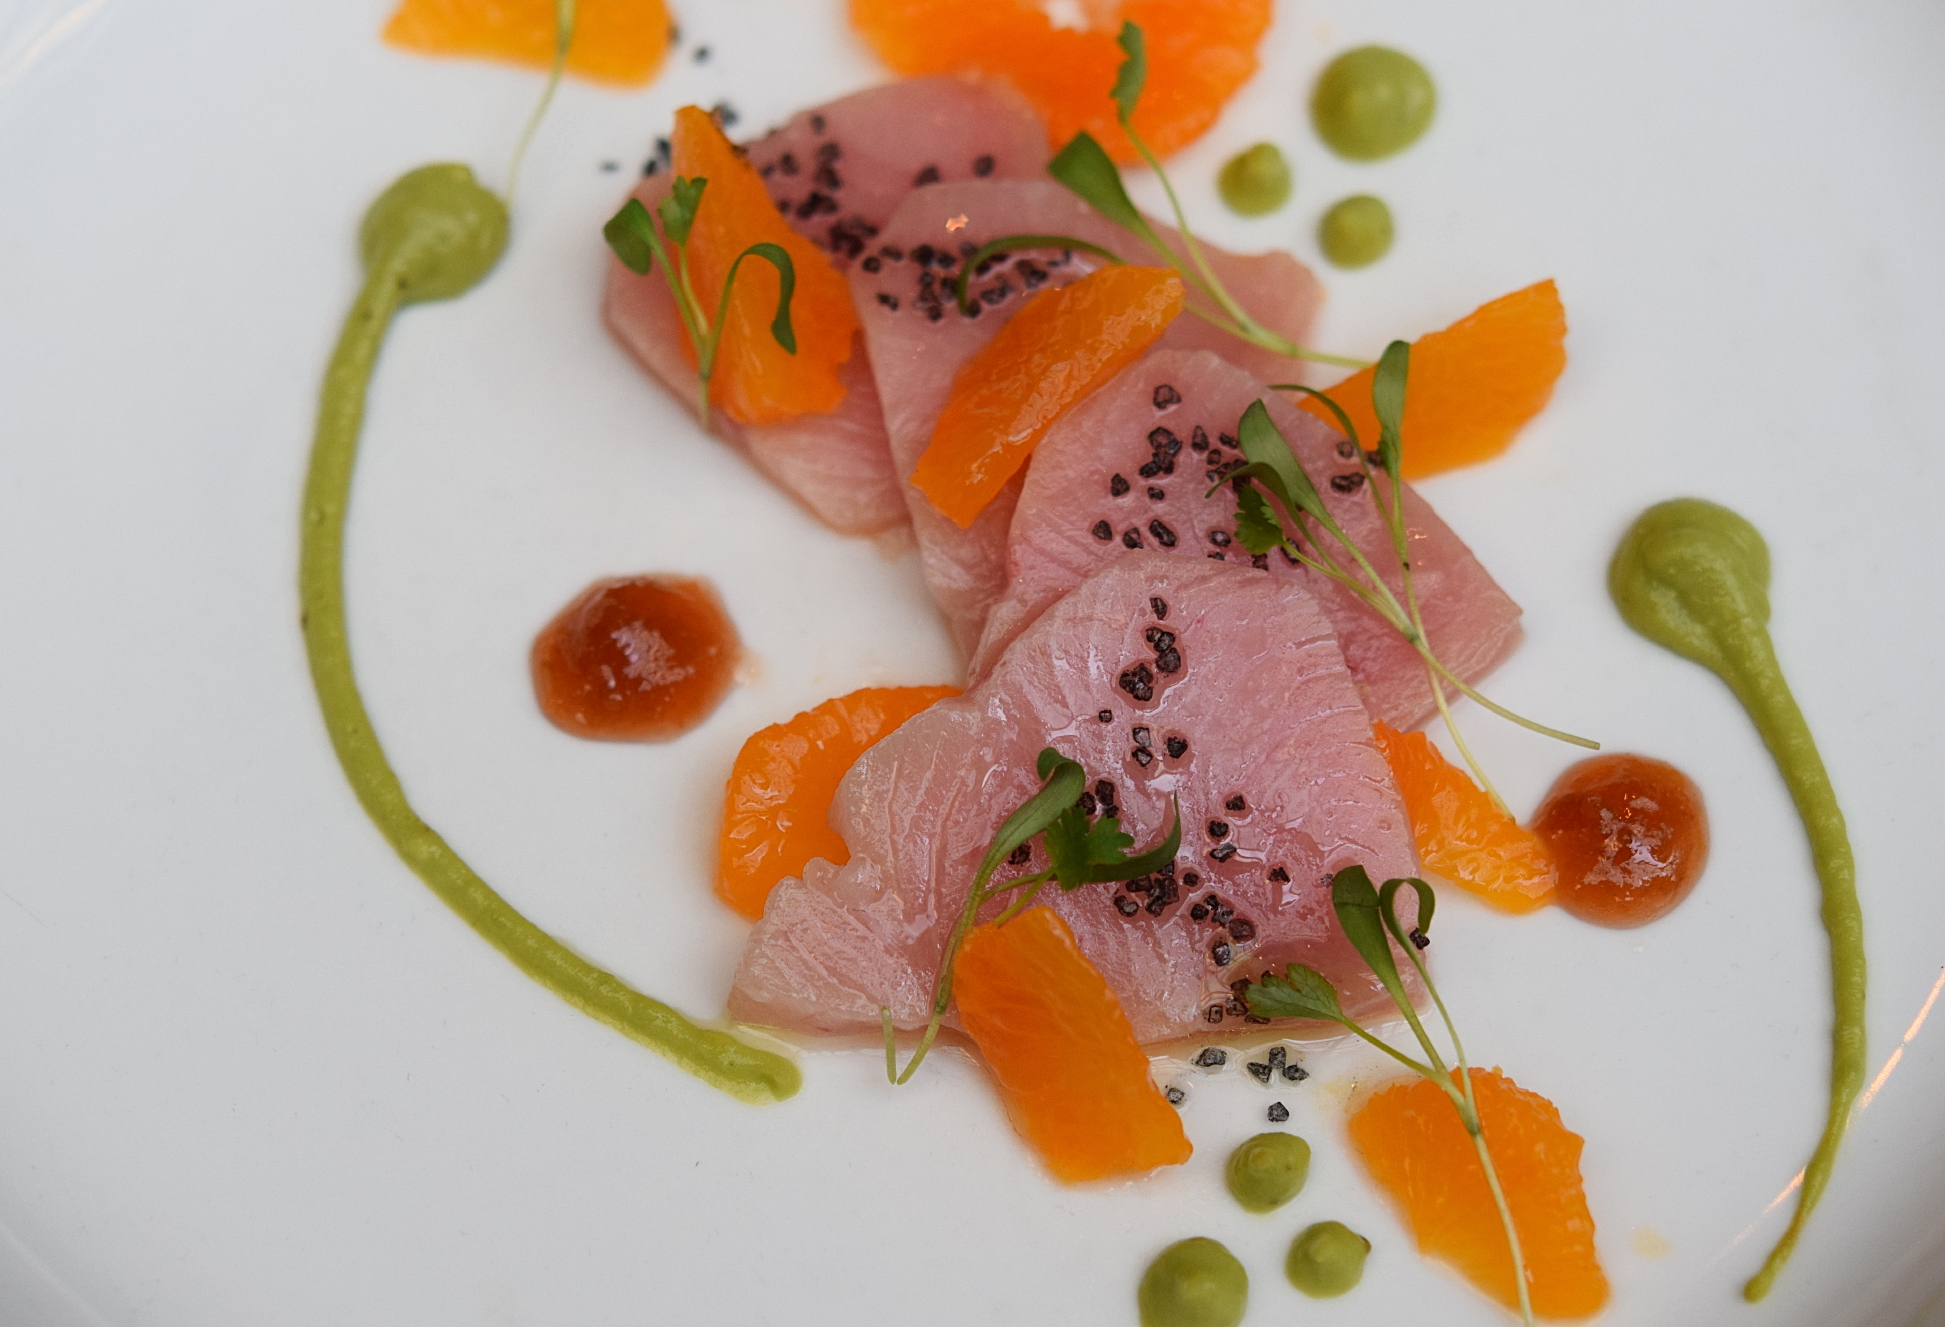 First course of Chef Niki's Adele-inspired tasting menu,  Hello, featuring hamachi and tangerine